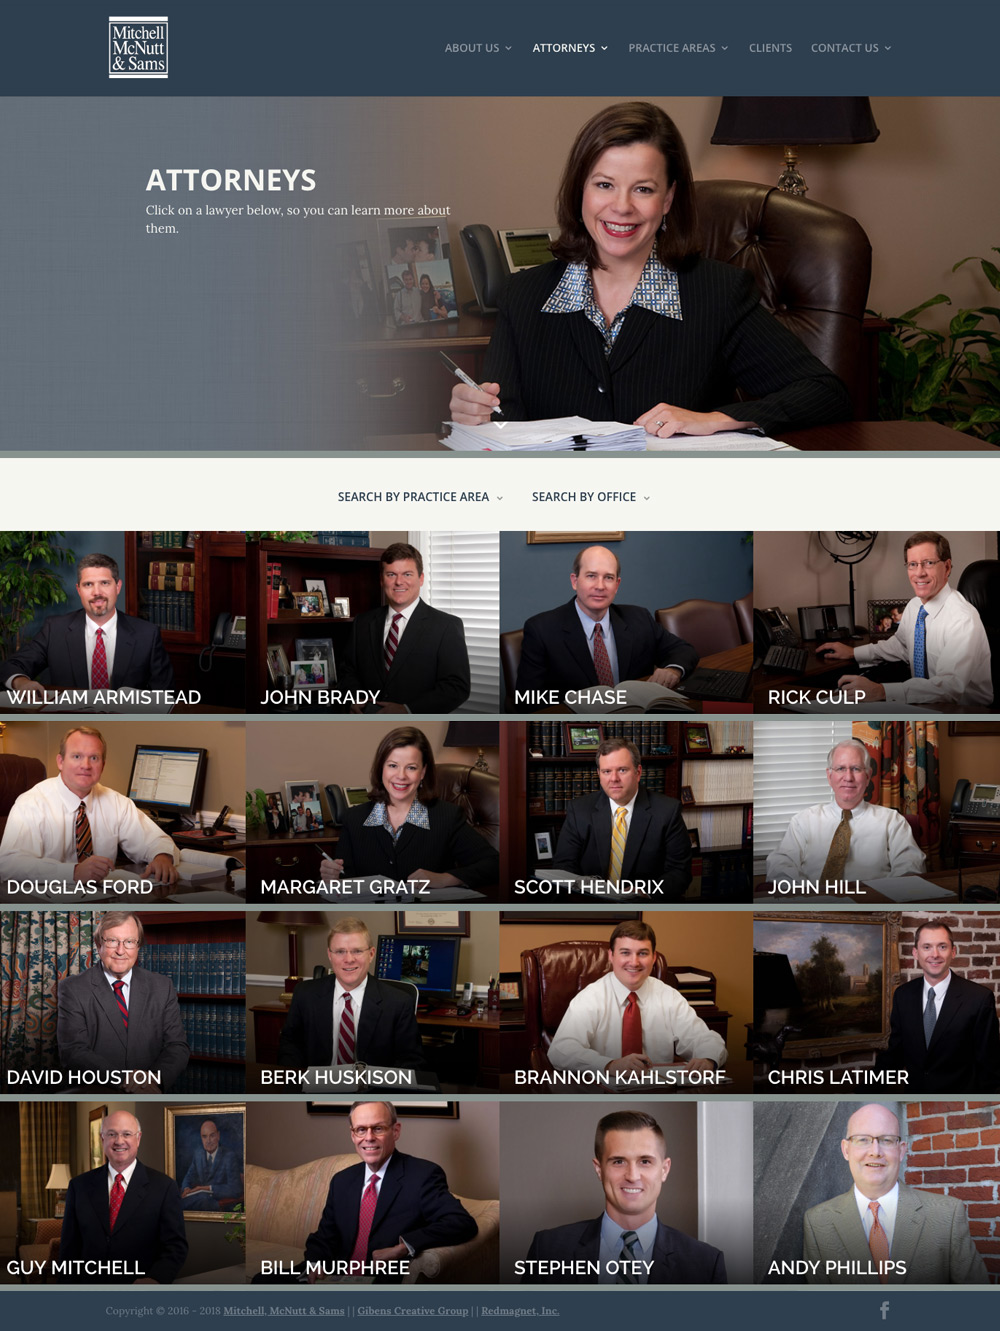 mitchellMcnutt_Attorneys_Full